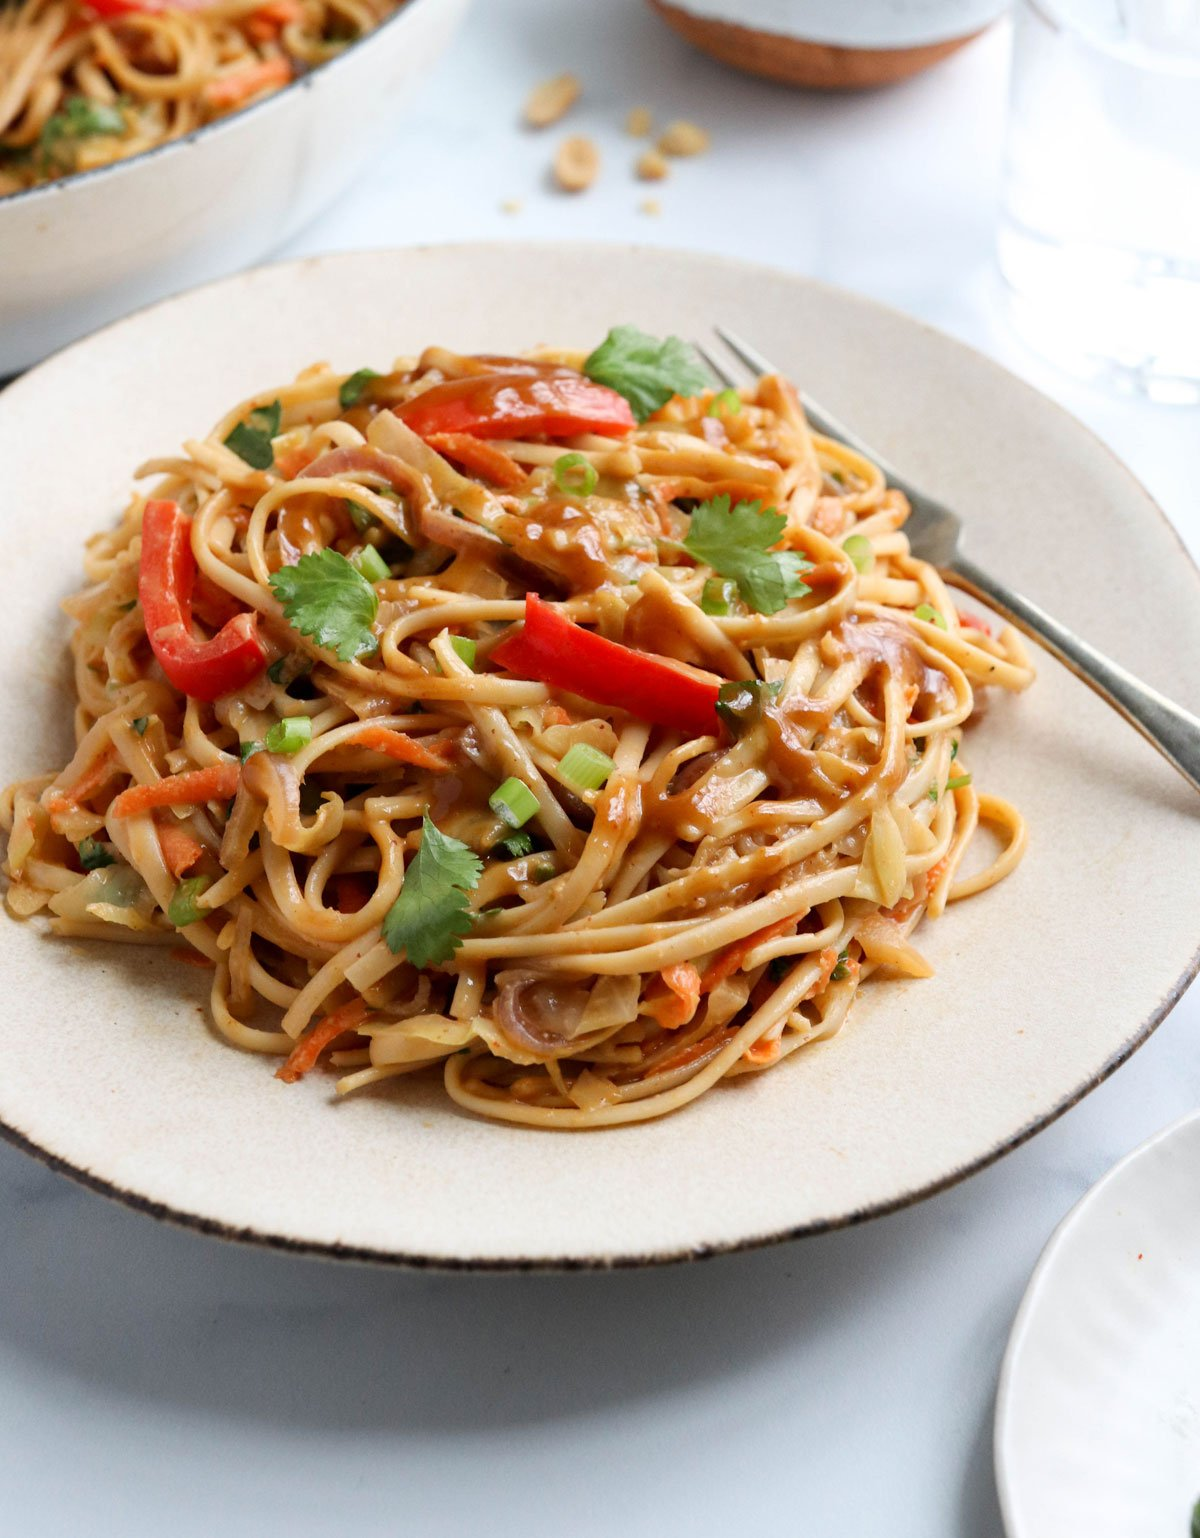 peanut noodles on a plate with fork